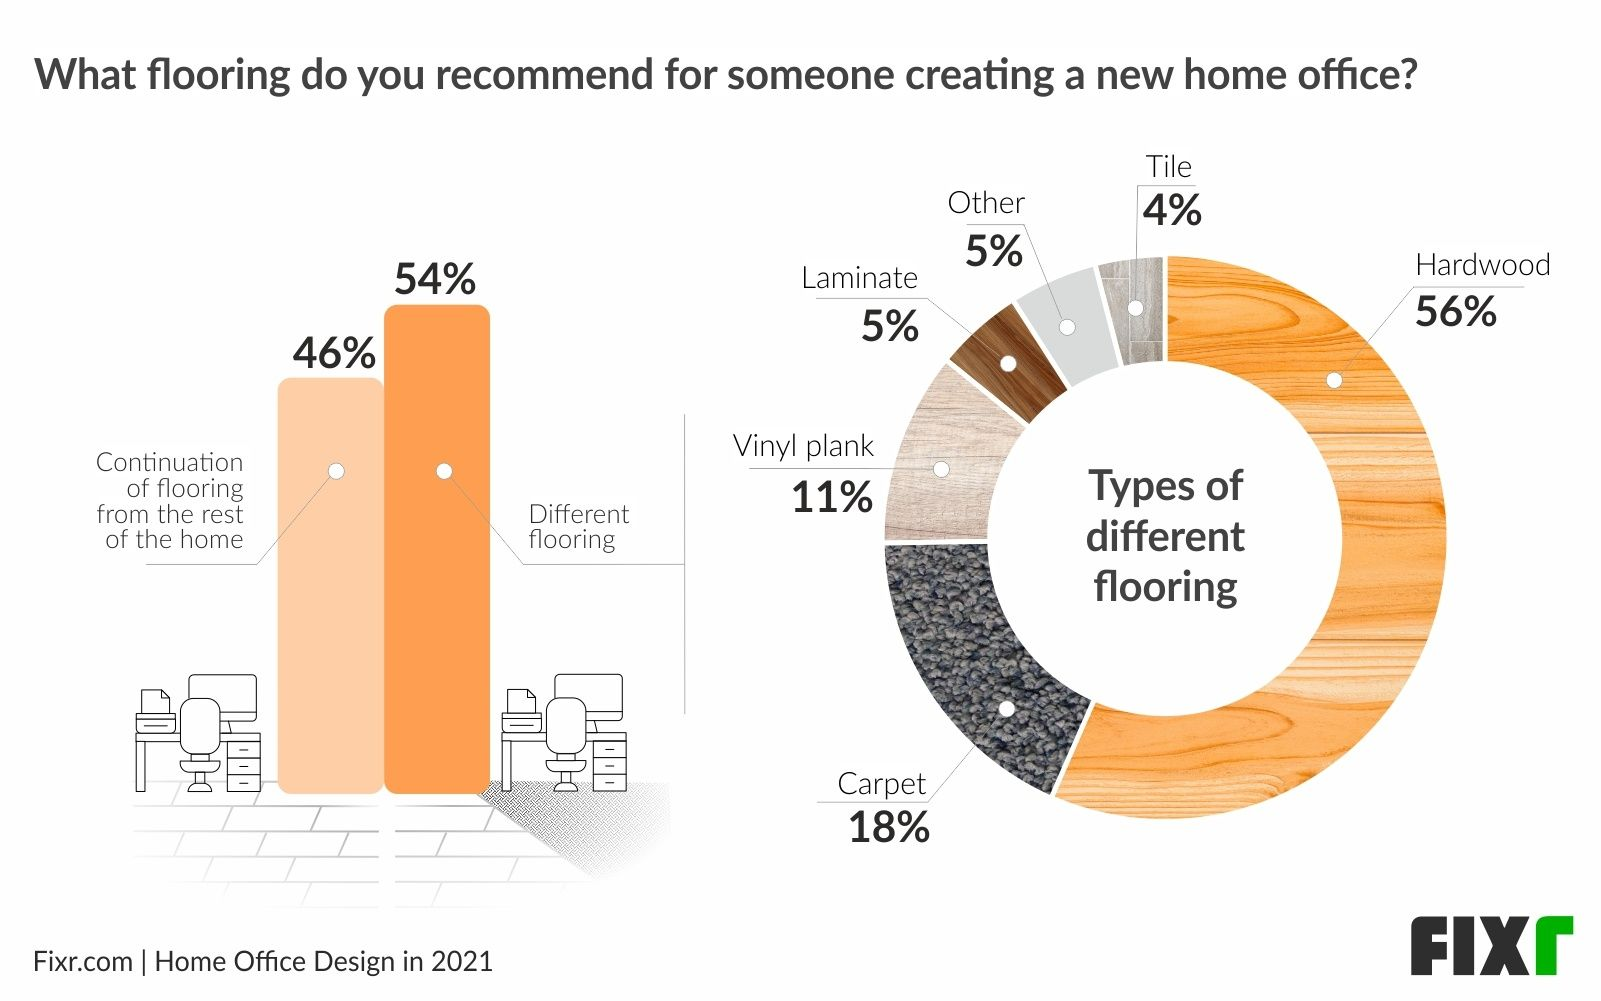 Home Office Design in 2021〡Hardwood is The Most Popular Home Office Flooring